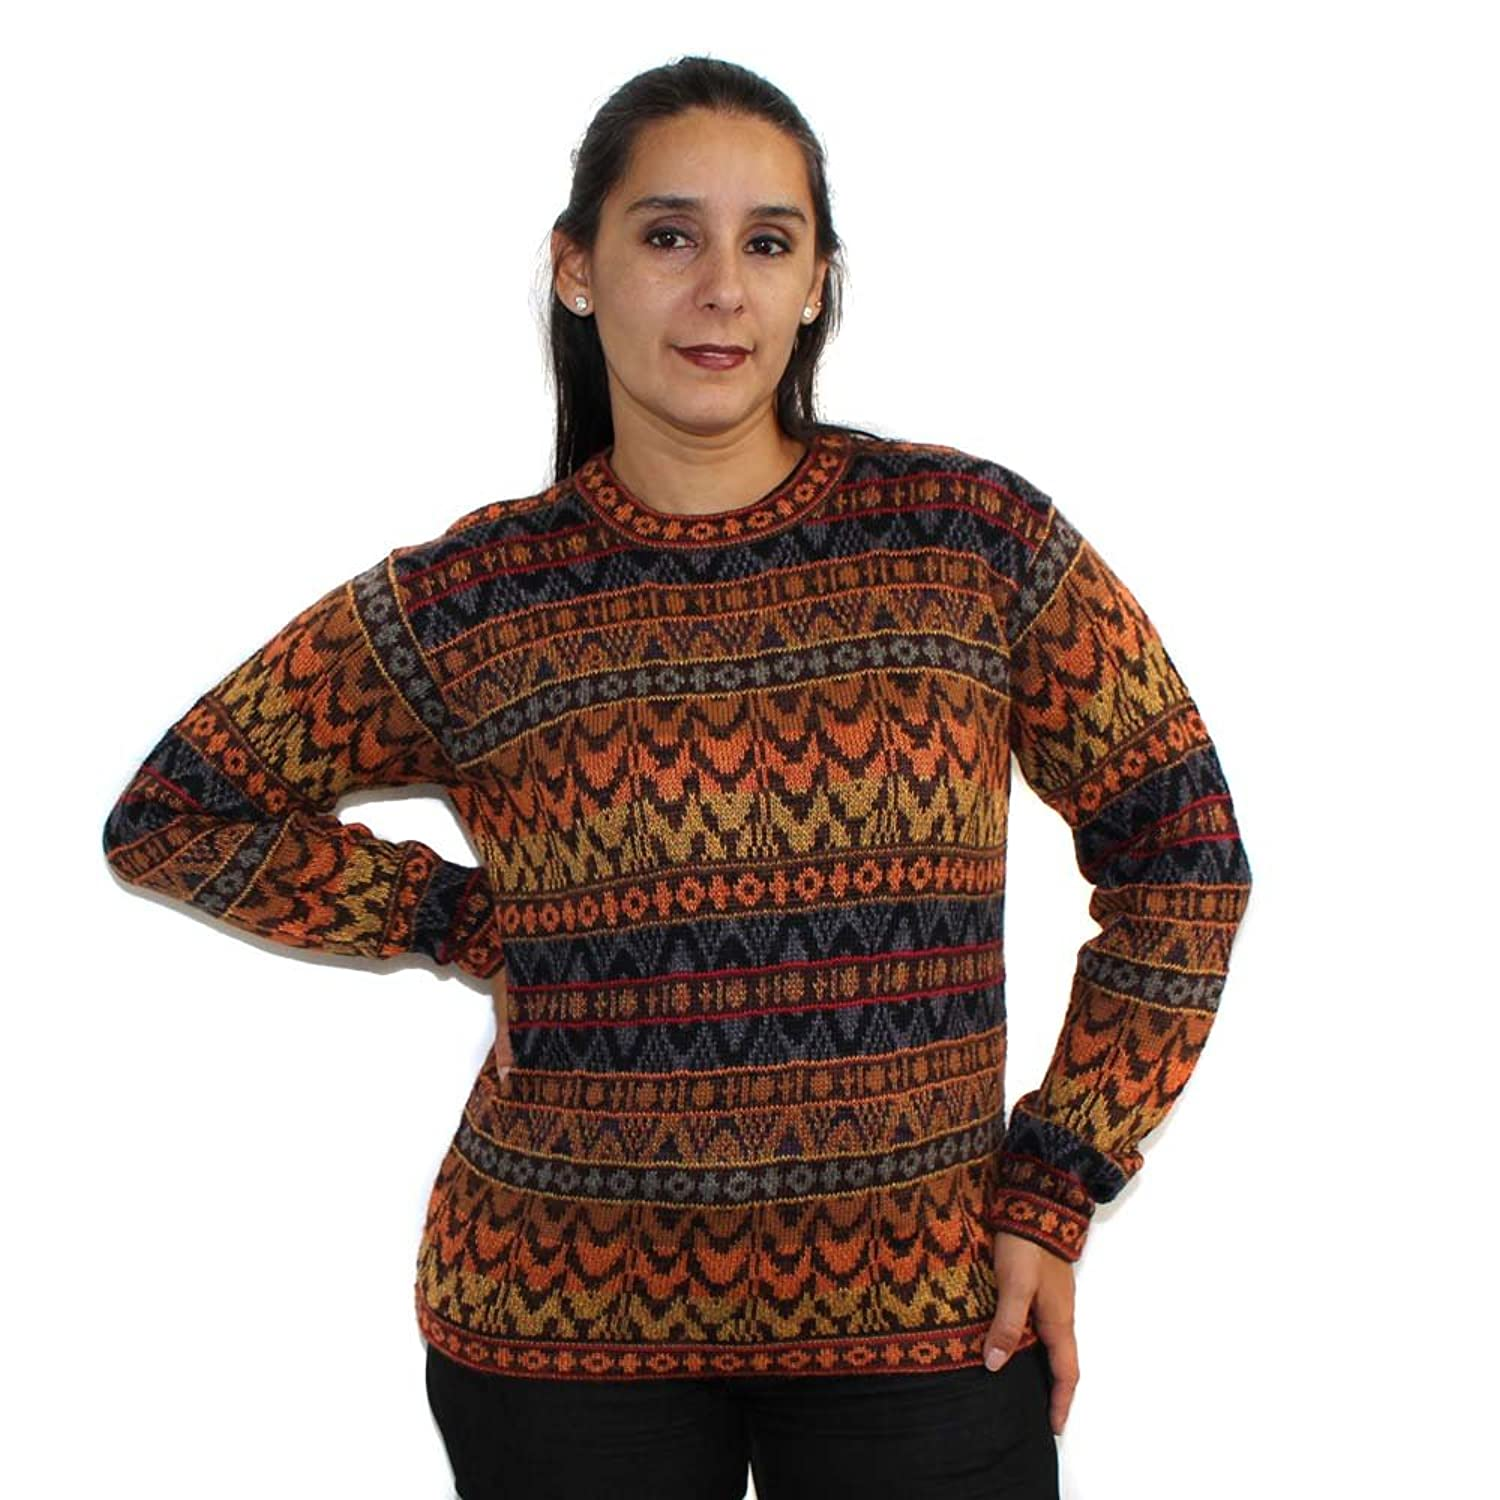 SWEATER Crew Neck jackard Baby Alpaca Made in PERU multicolor